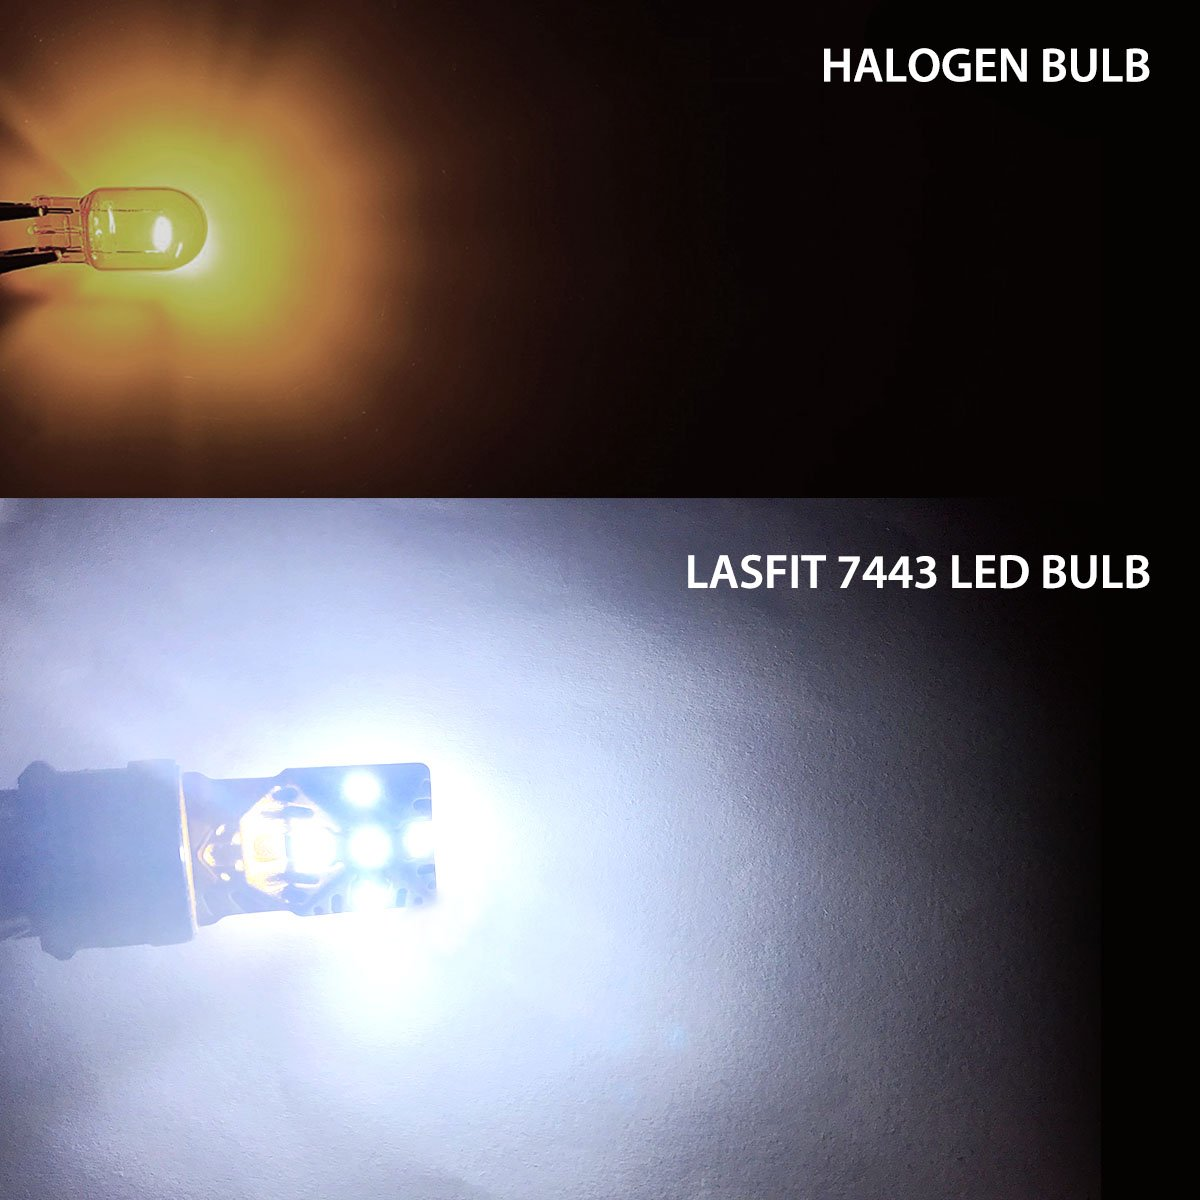 LASFIT 7443 7440 992 T20 LED Bulbs Polarity Free 6000K Super Bright Use for Back Up Reverse, Daytime Running, Parking Lights, Xenon White (Pack of 2) by LASFIT (Image #3)